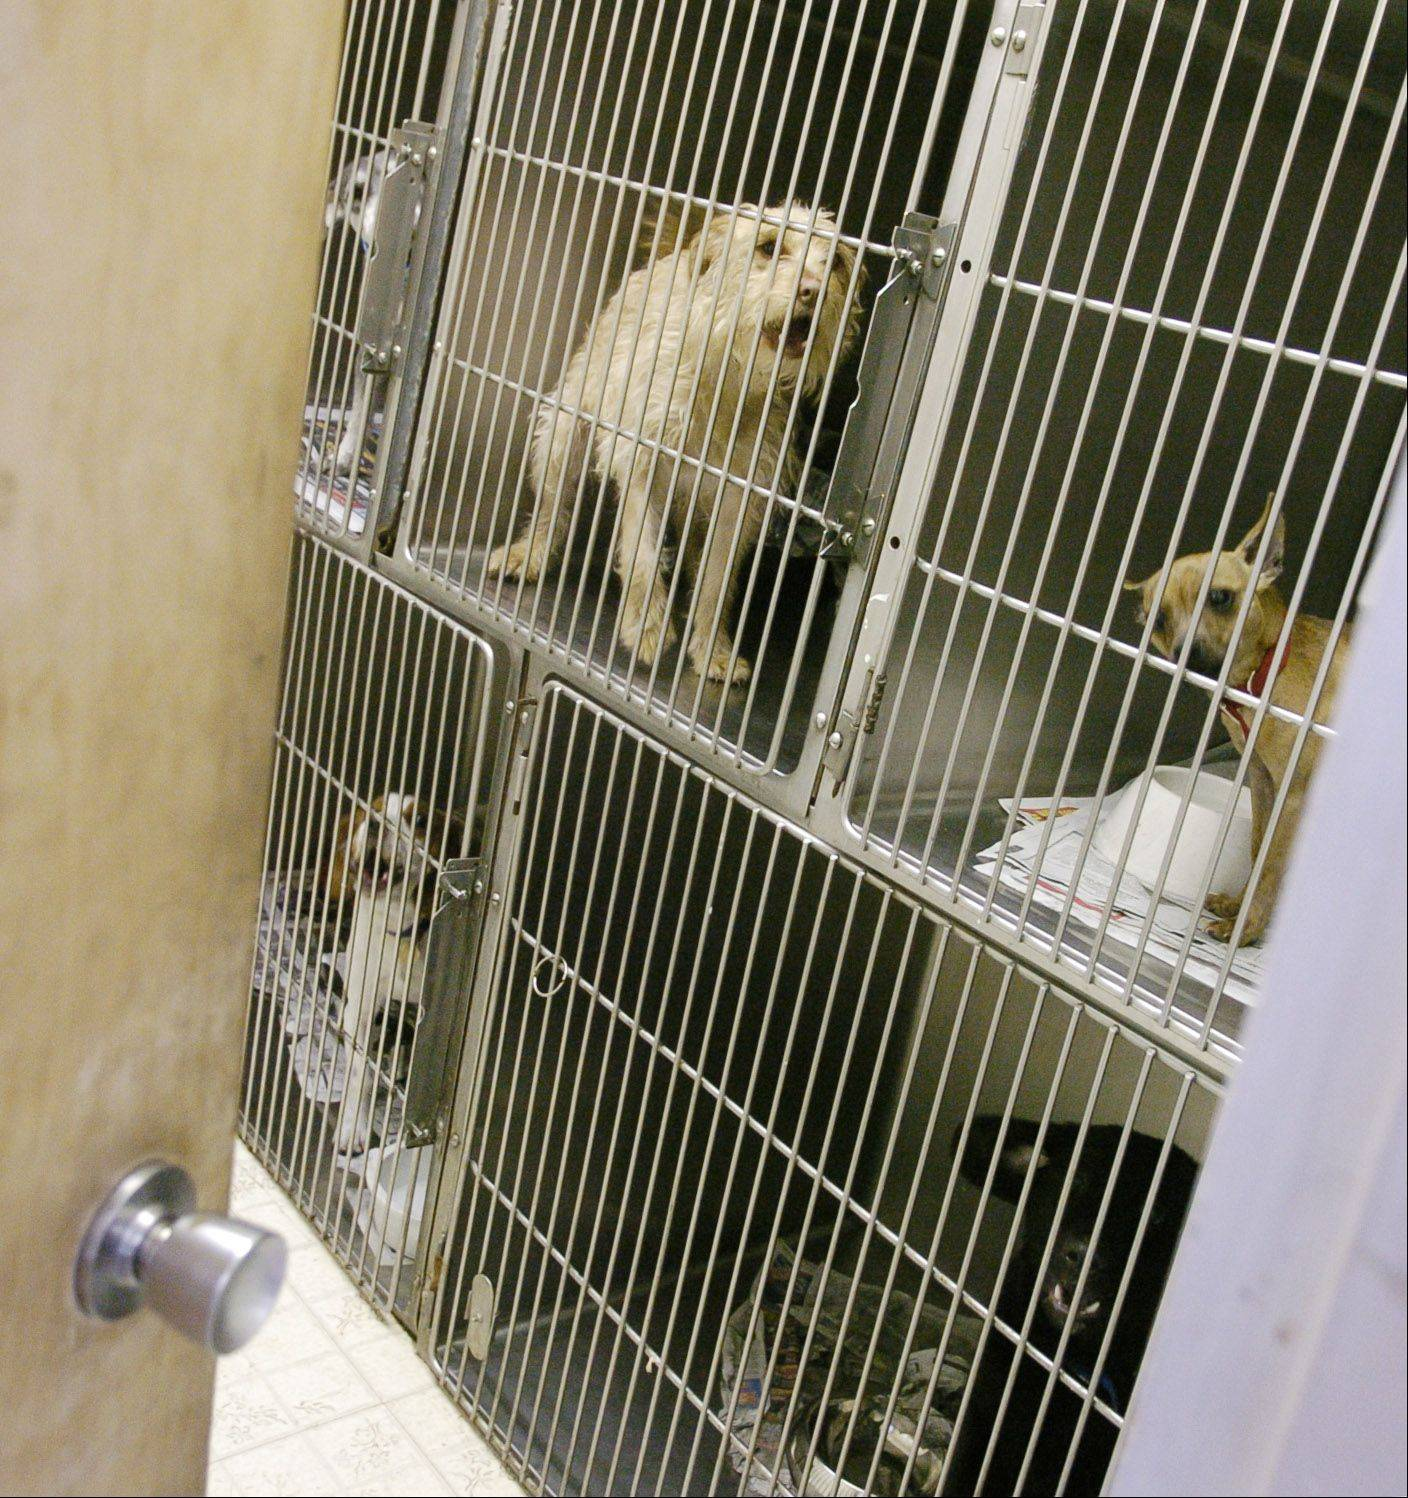 McHenry County's animal control department handles 2,500 animals a year on a budget of $720,000, which includes veterinarian services and 18 staff members. Kane County's animal control wants a budget of $932,000 to cover the cost of an administrator and a part-time veterinarian to handle 400 animals.